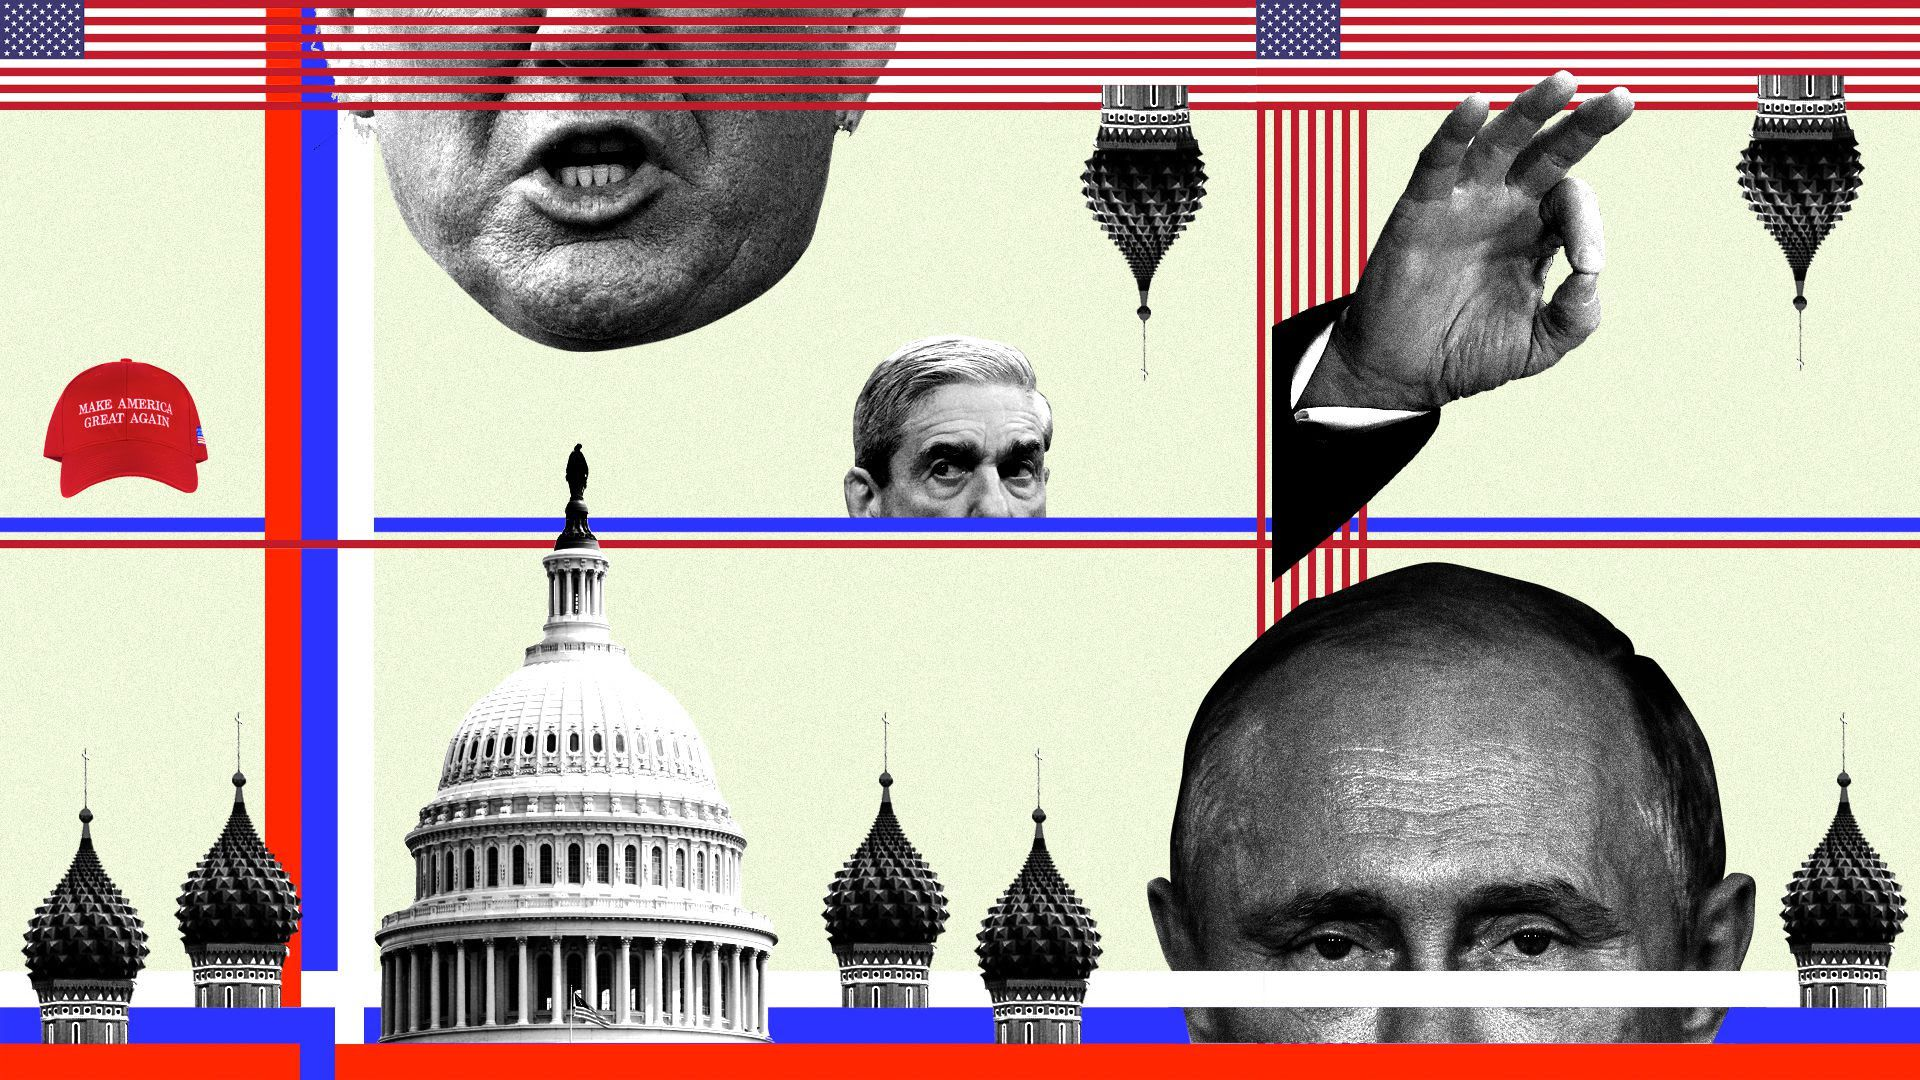 This illustration includes the faces of Trump, Mueller and Putin, in addition to to other stuff